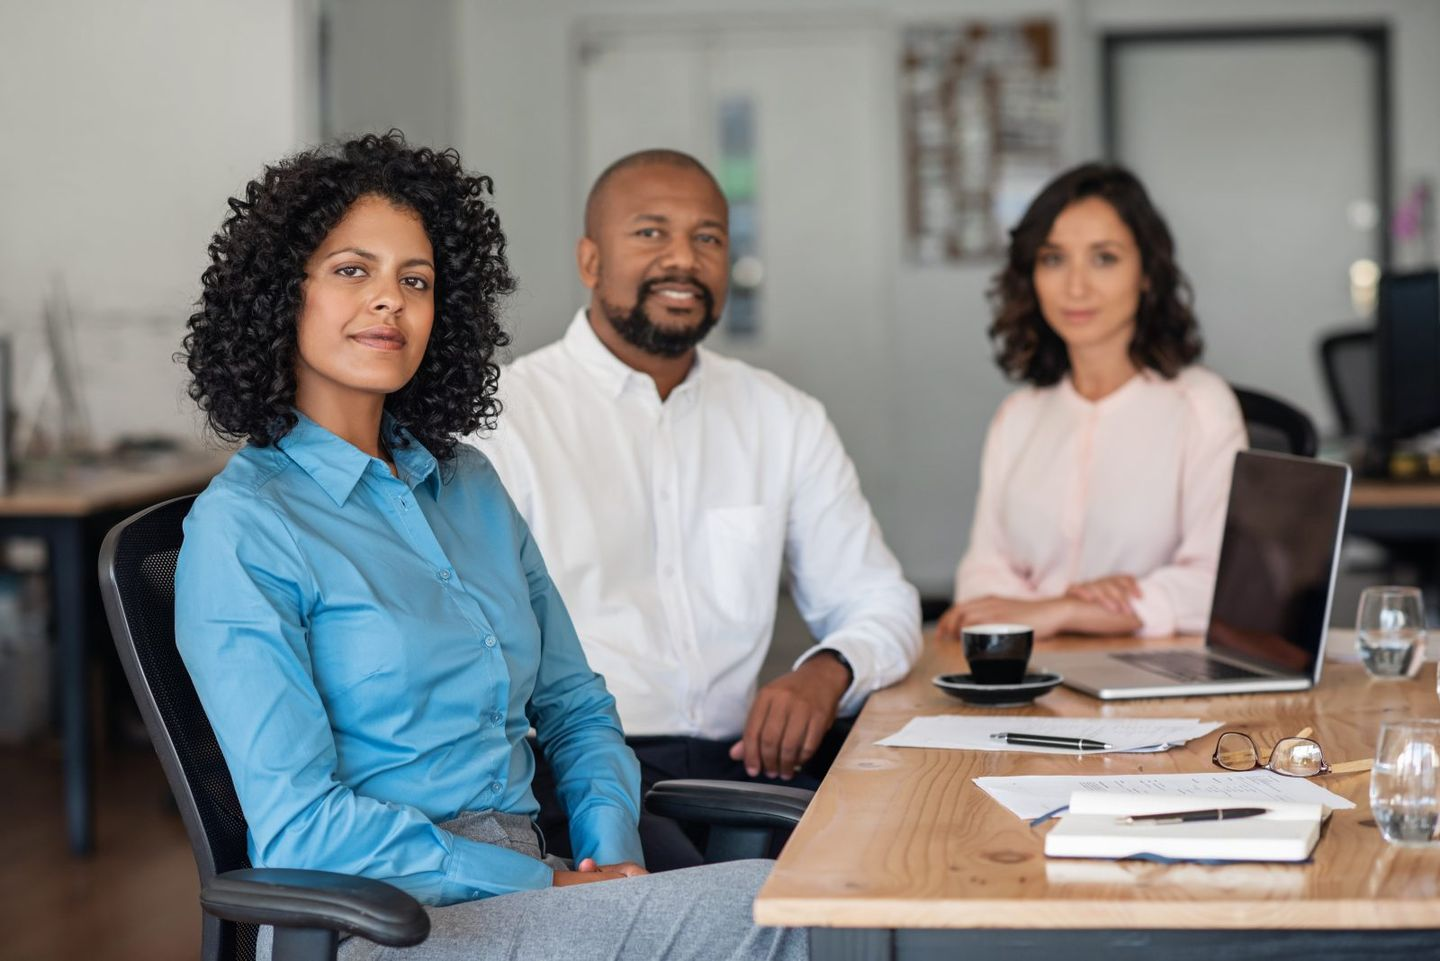 Employees sitting at board room table